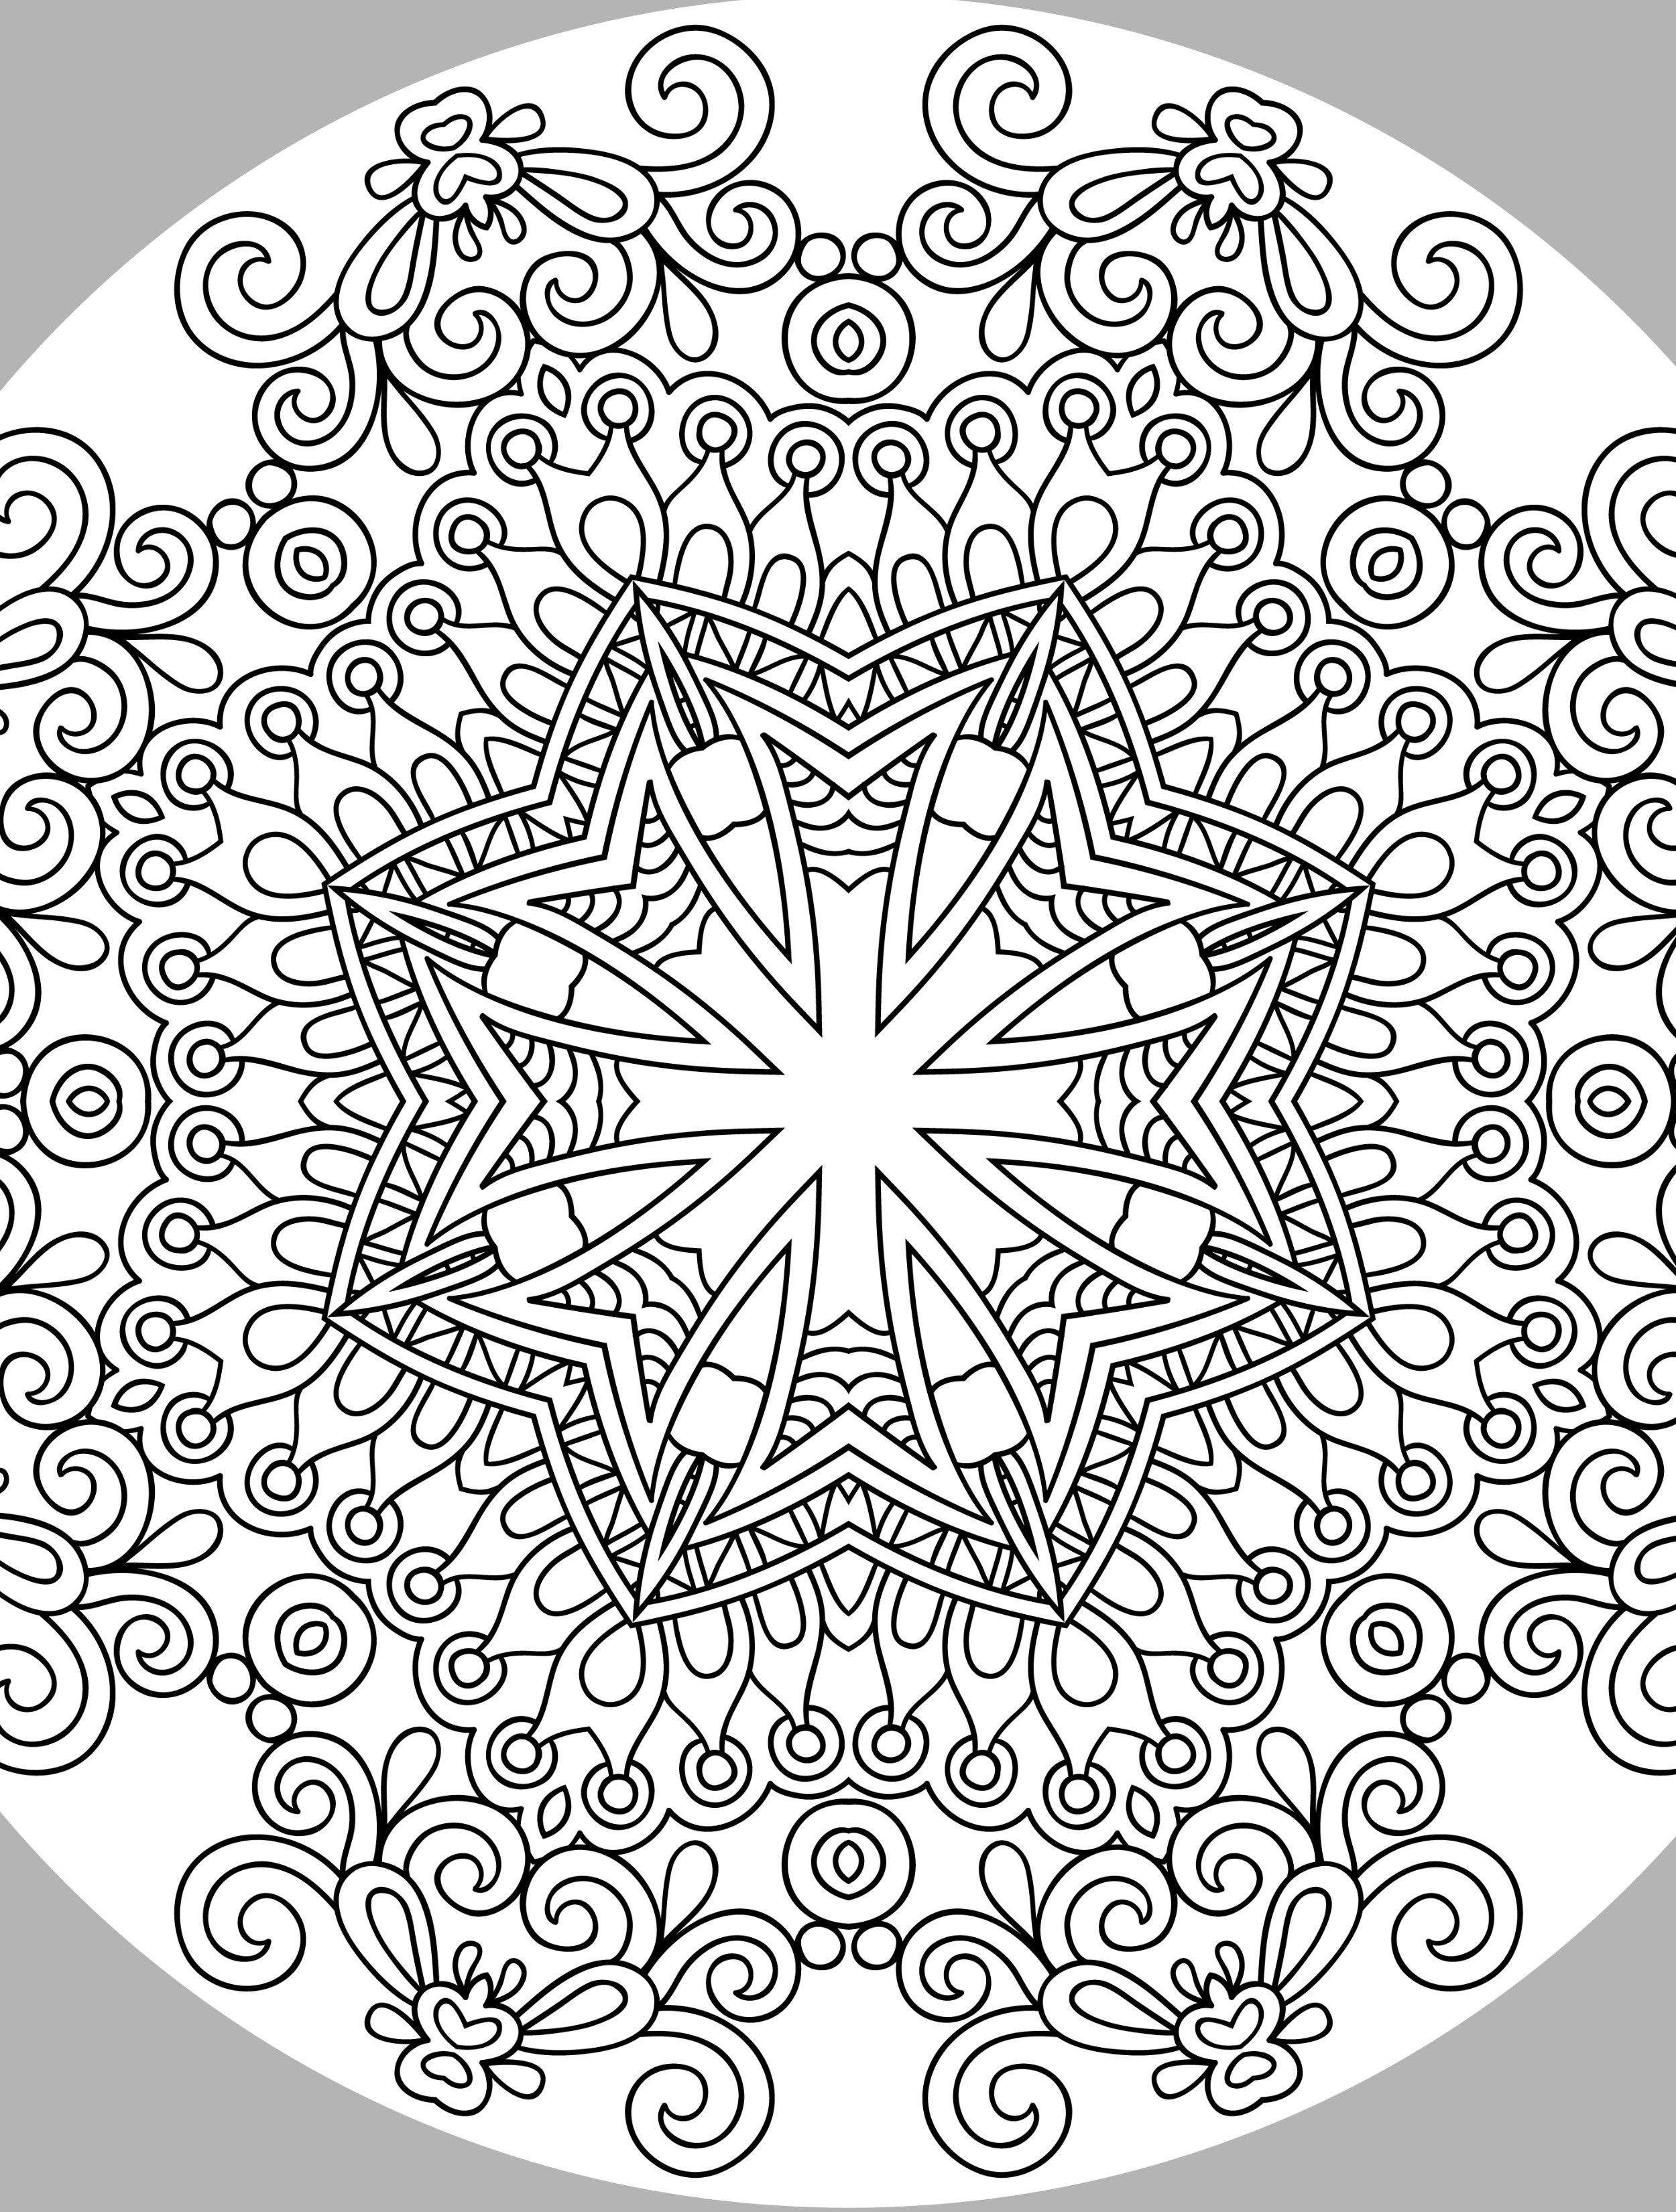 Best ideas about Adult Coloring Books Printable . Save or Pin 10 Free Printable Holiday Adult Coloring Pages Now.